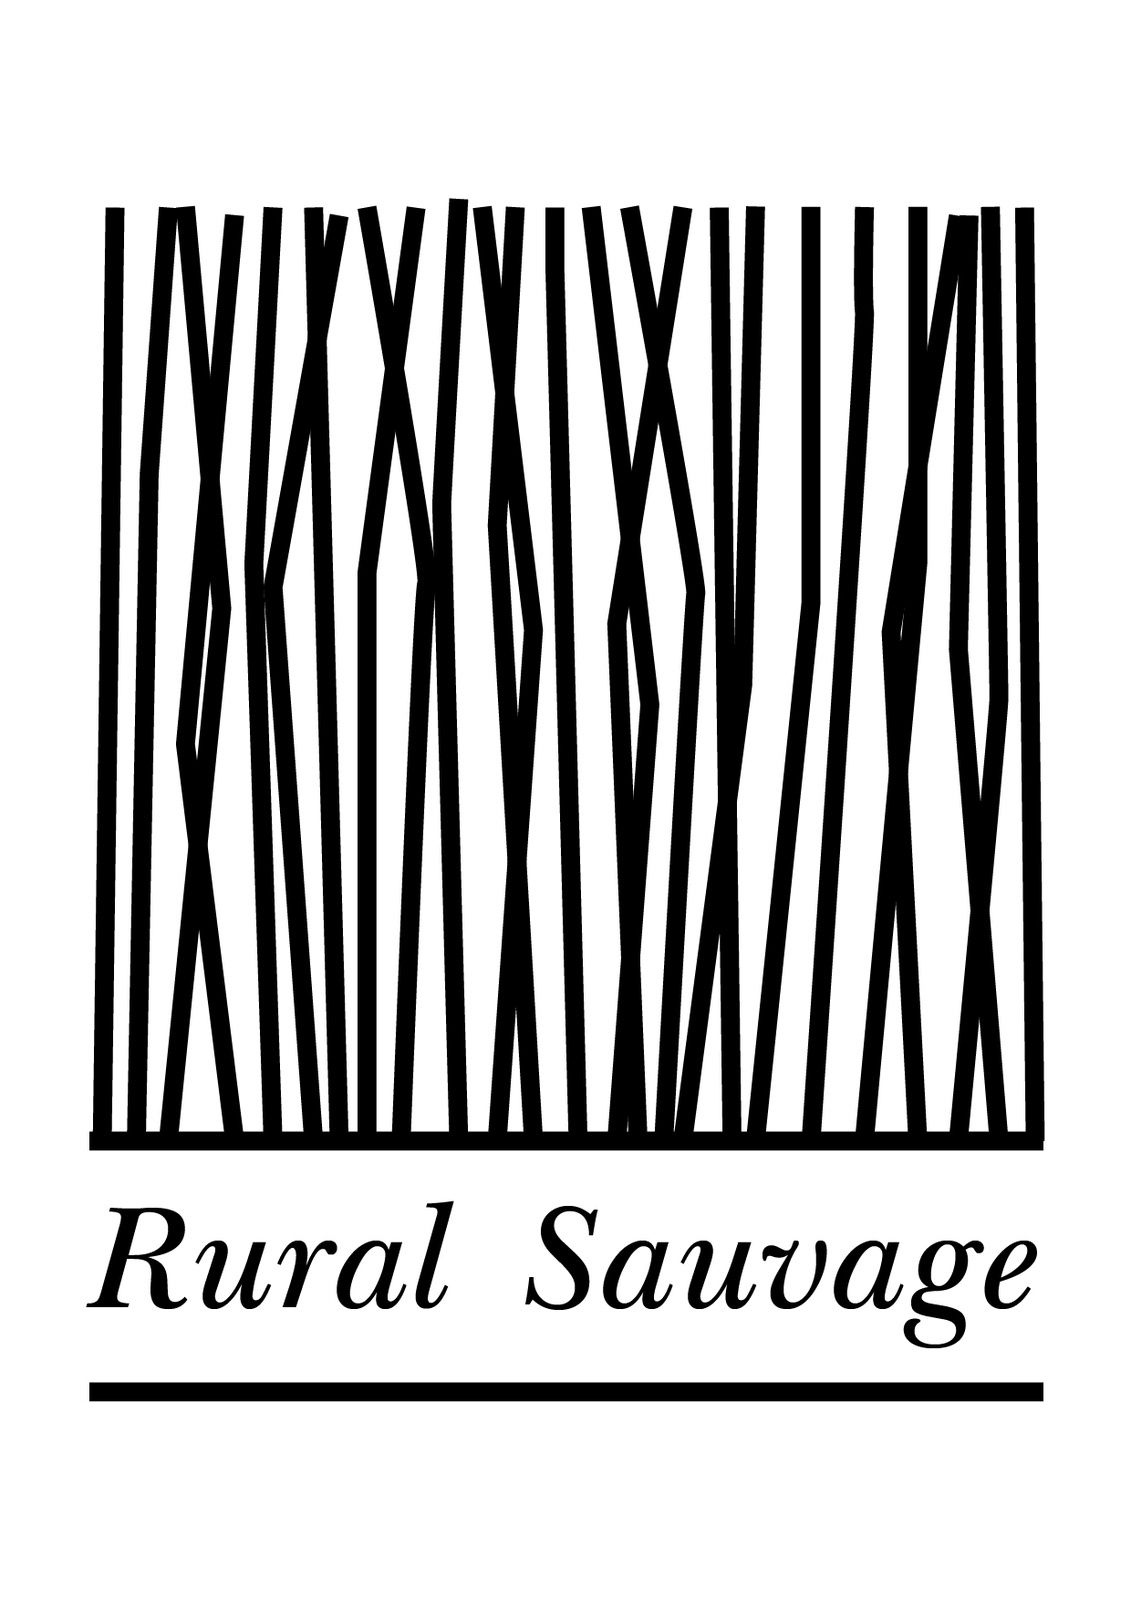 https://ruralsauvage.wordpress.com/